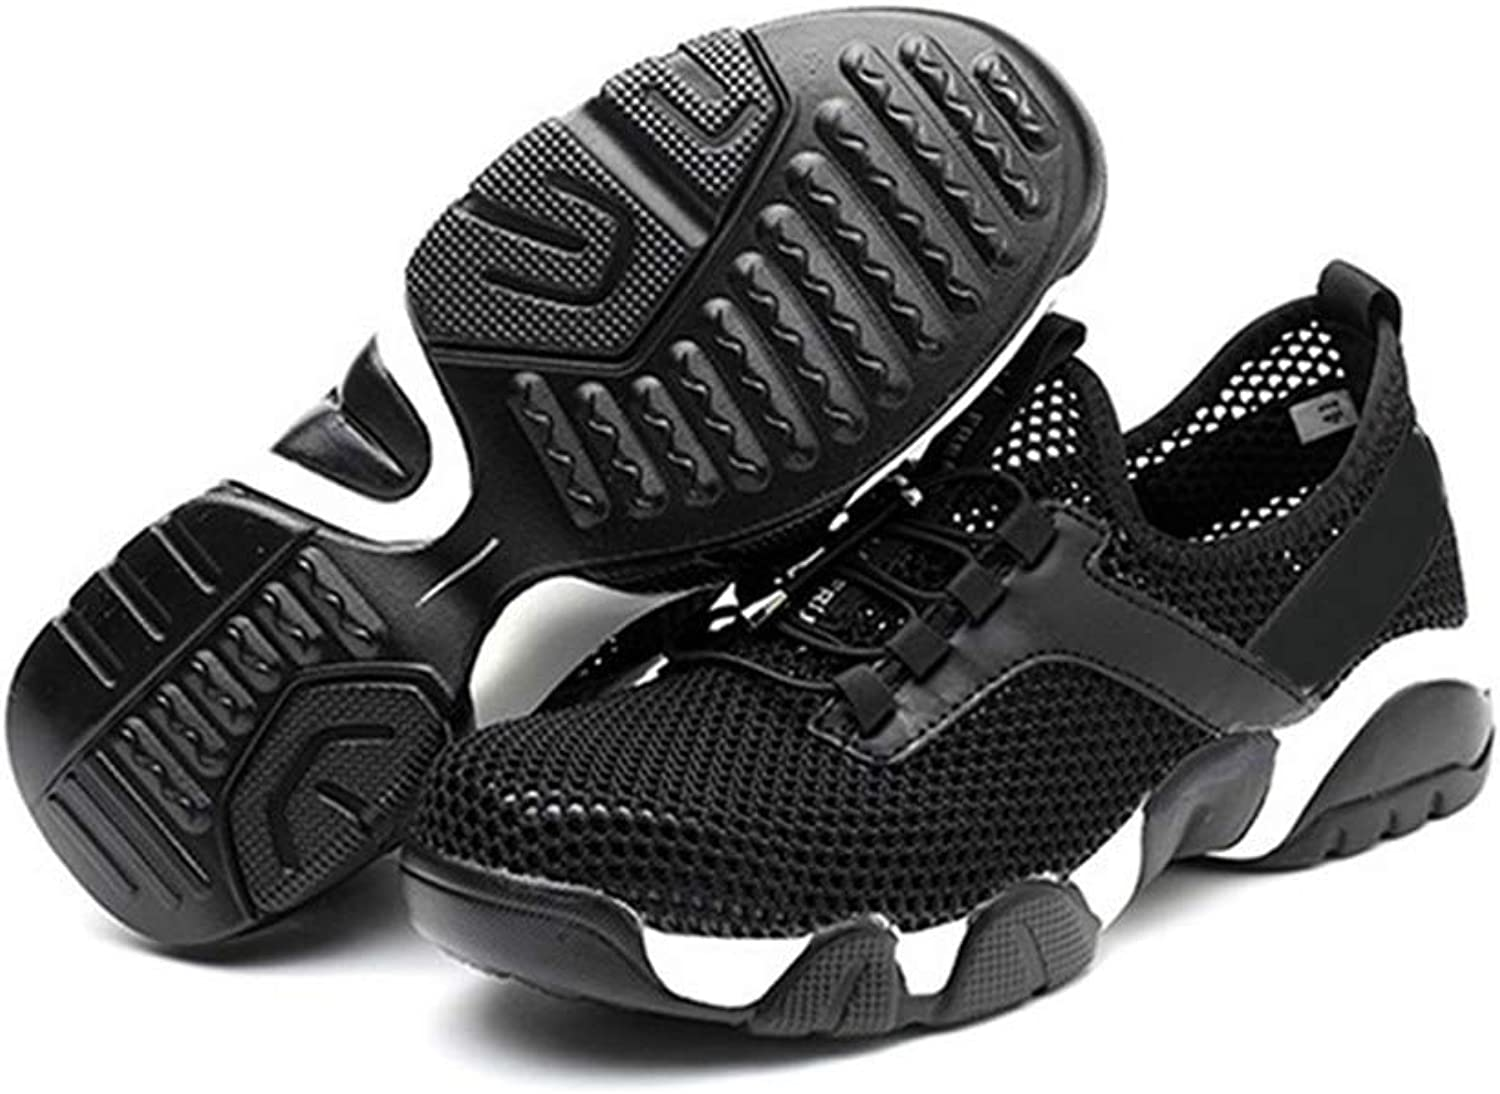 Liveday Safe Predective Worker shoes for Men Women Heavy Duty Anti Slip Breathable Sneakers